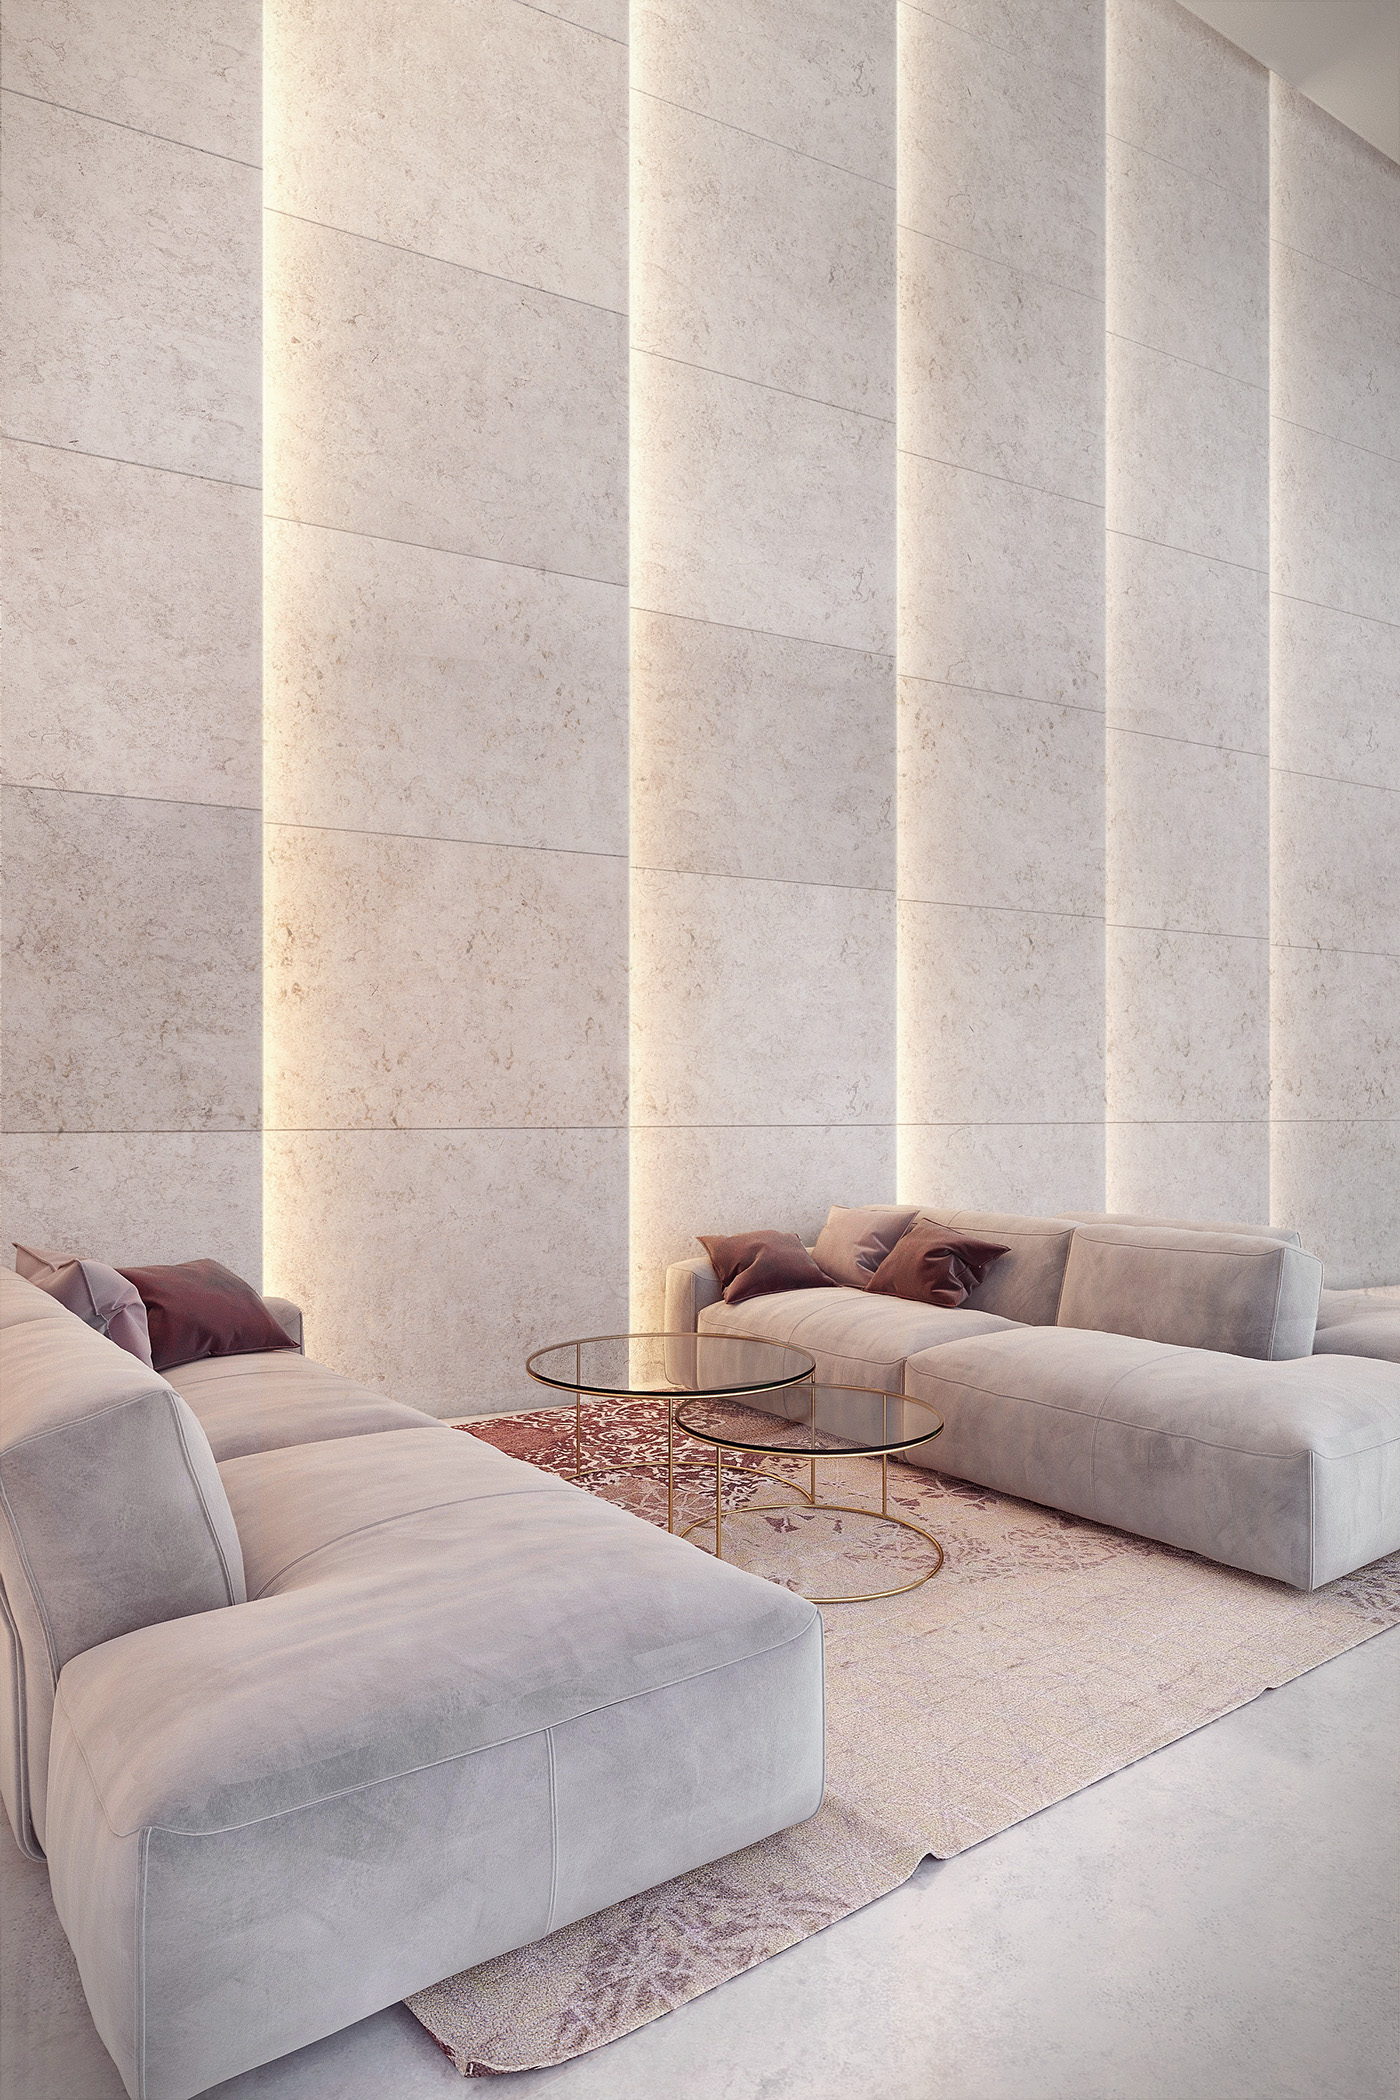 Light in architecture travertine wall on behance for Hotel wall design